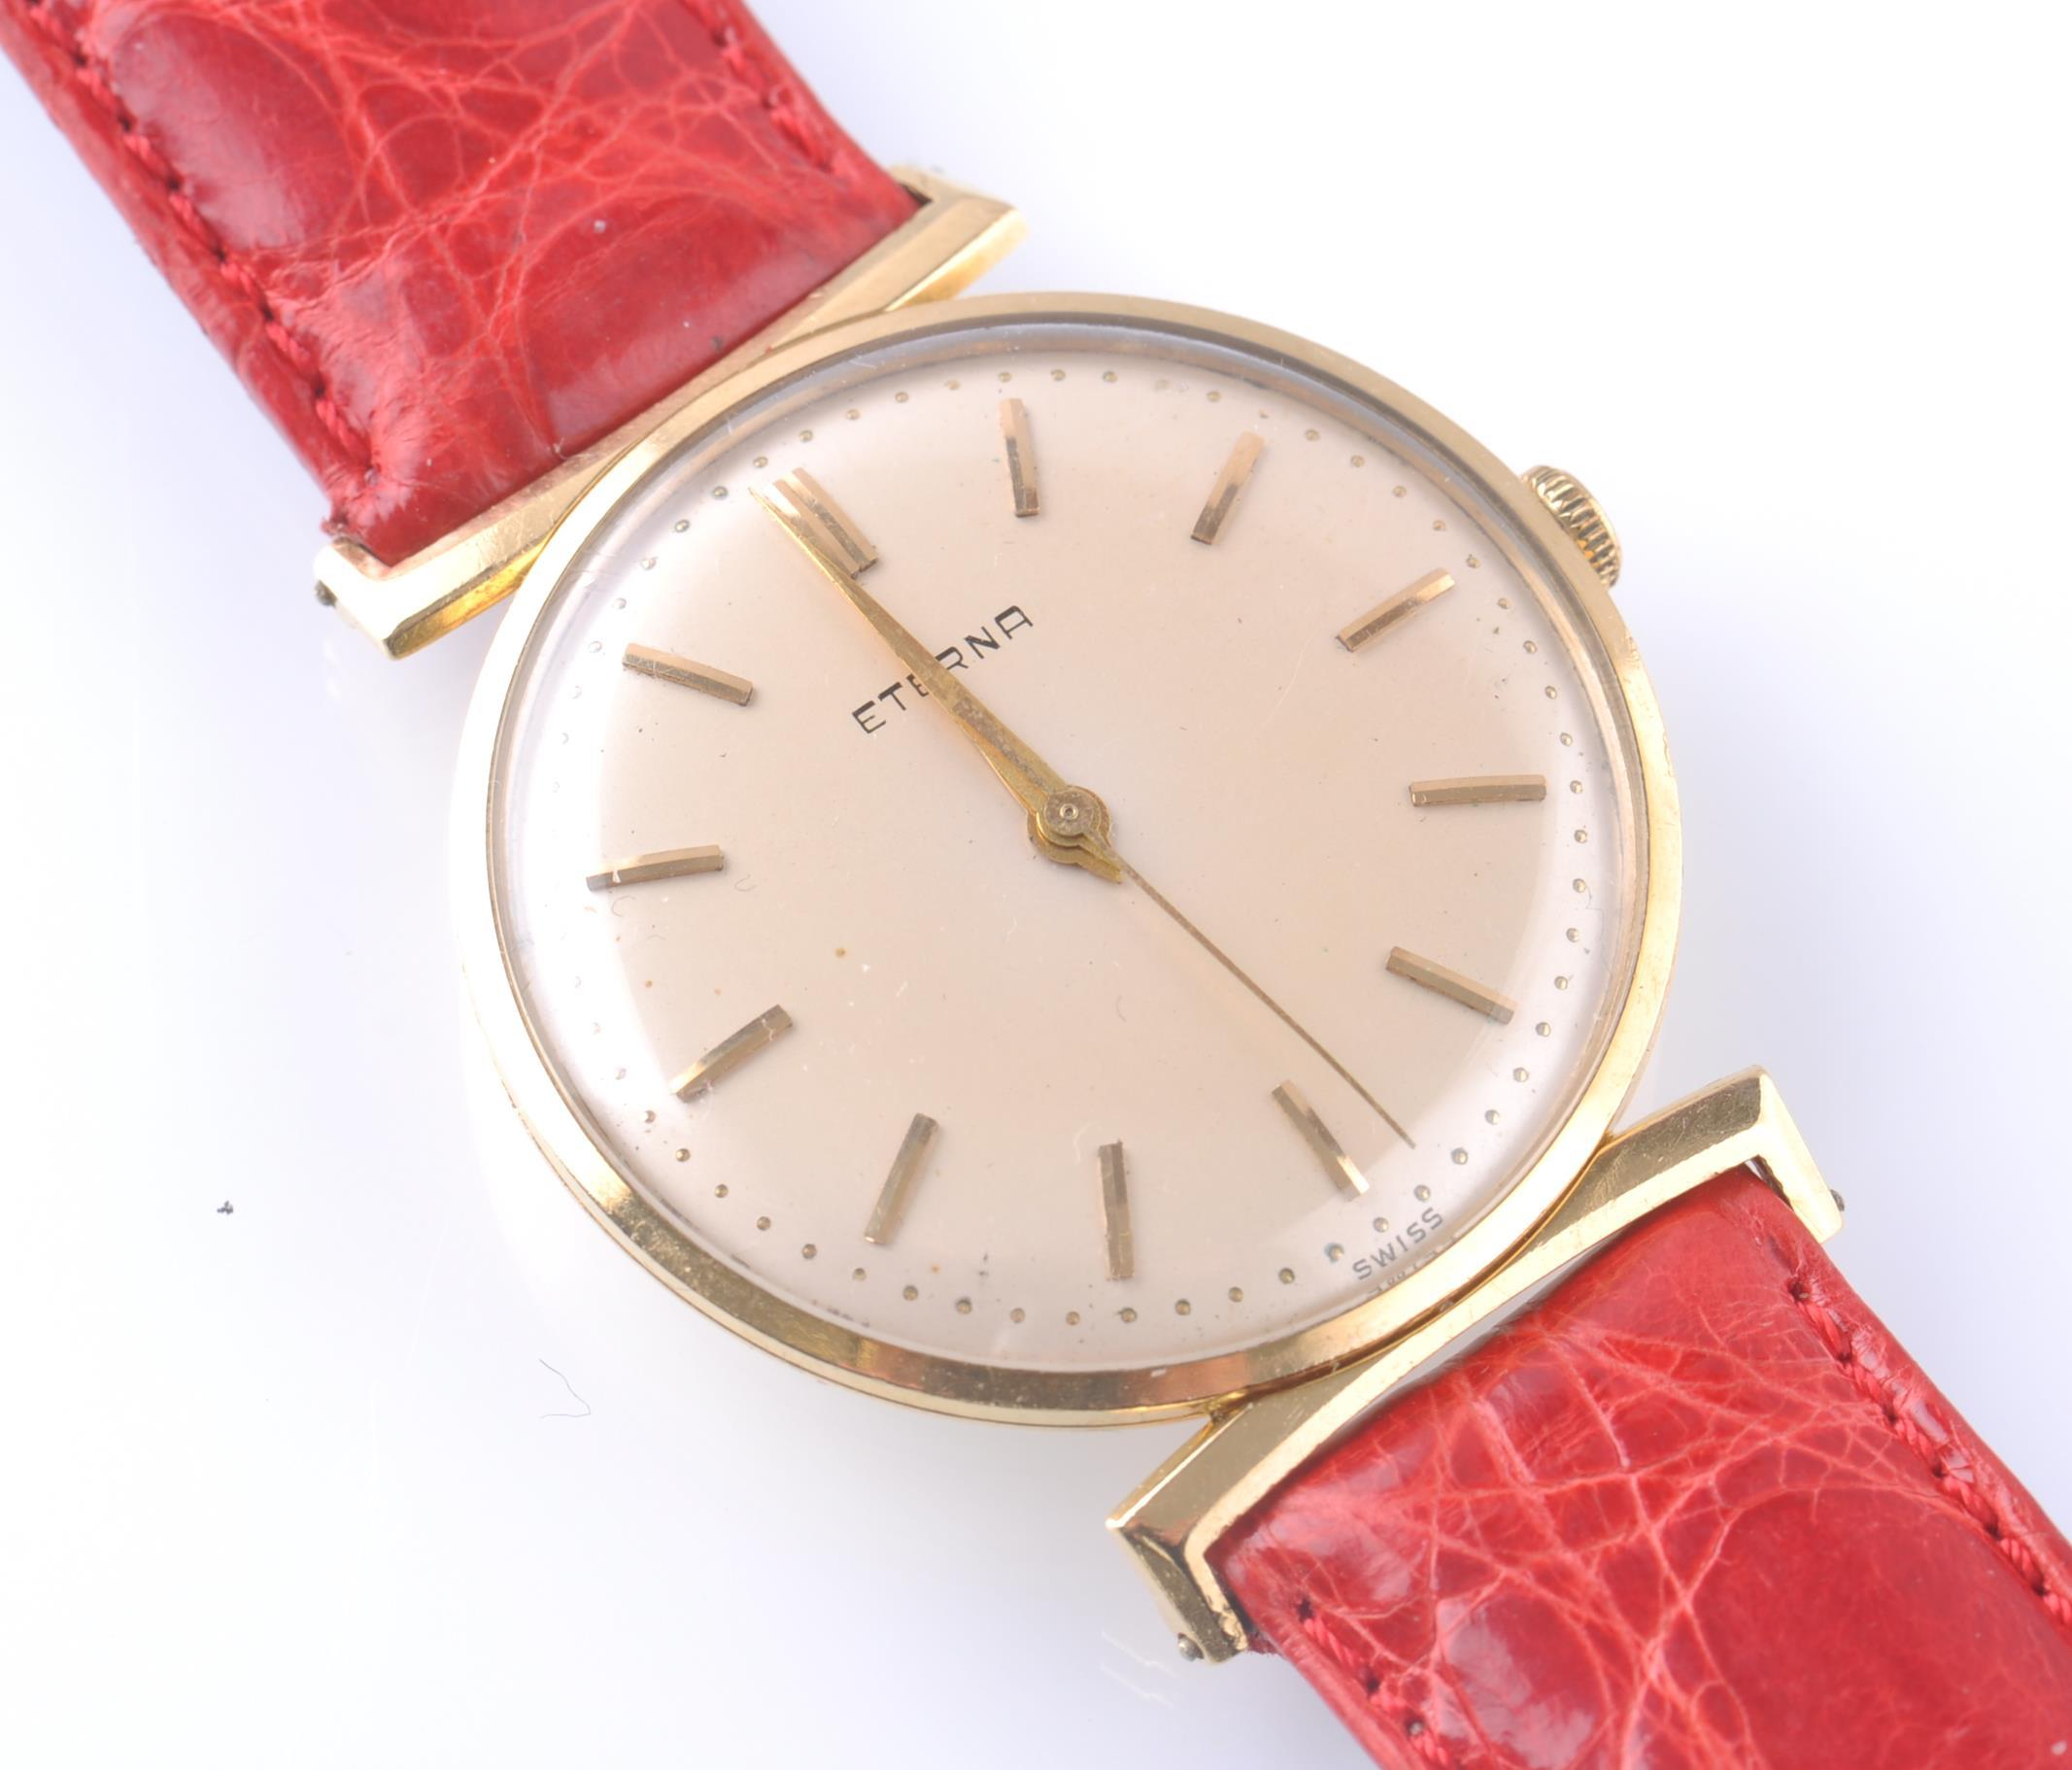 ETERNA 18CT GOLD 1950'S VINTAGE WRIST WATCH - Image 2 of 9